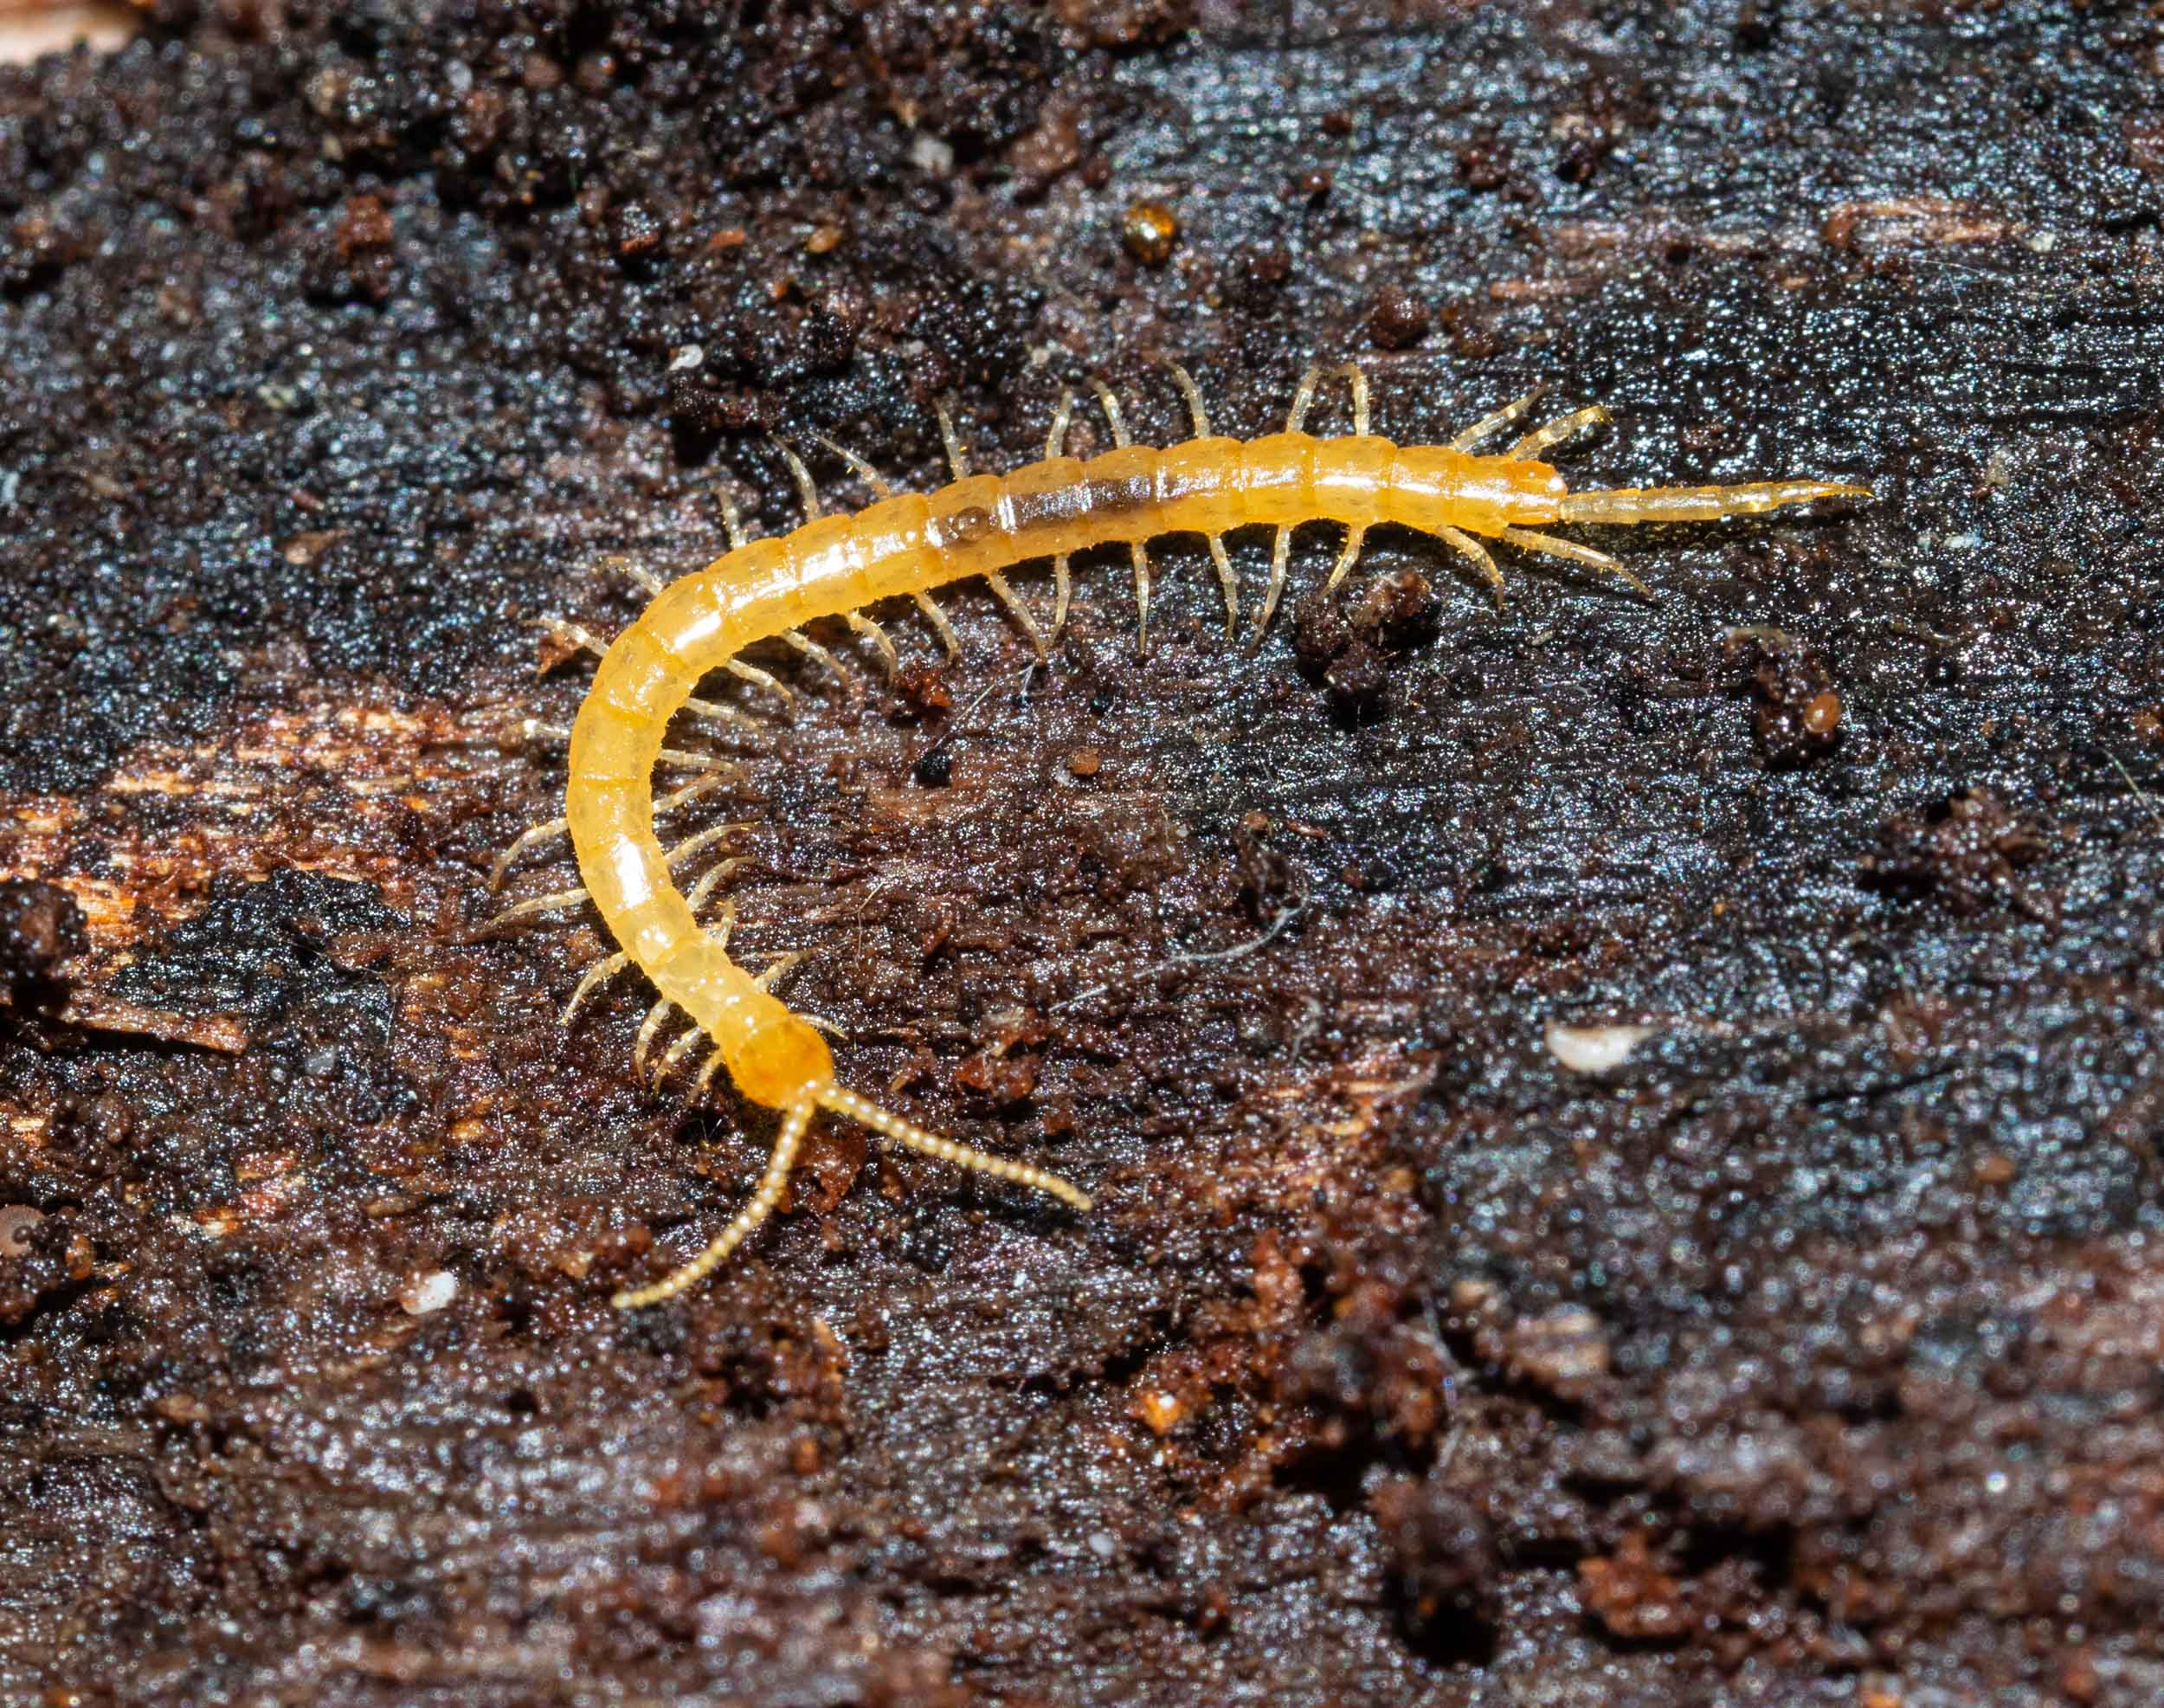 A small centipede,  Cryptops sp ., found under the bark of a rotting log. The genus name is appropriate, given the lifestyle of this creature. A small predator, which preys on even smaller invertebrates.